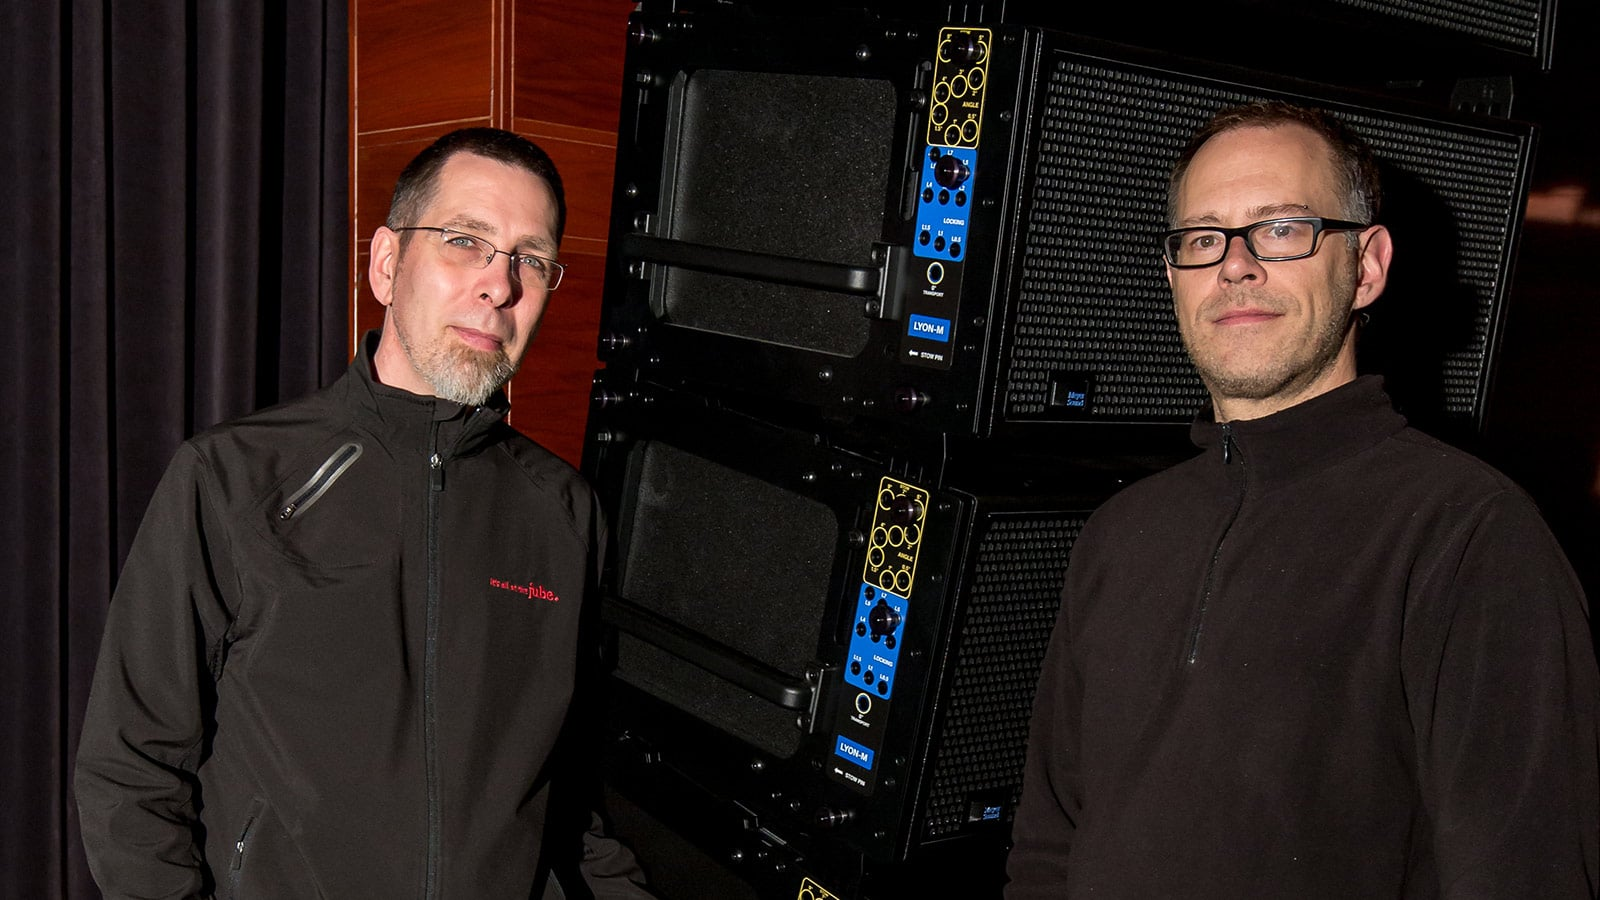 L: Paul Schmitz  R: Cory Papirny, Principal Audio Technician at NAJA